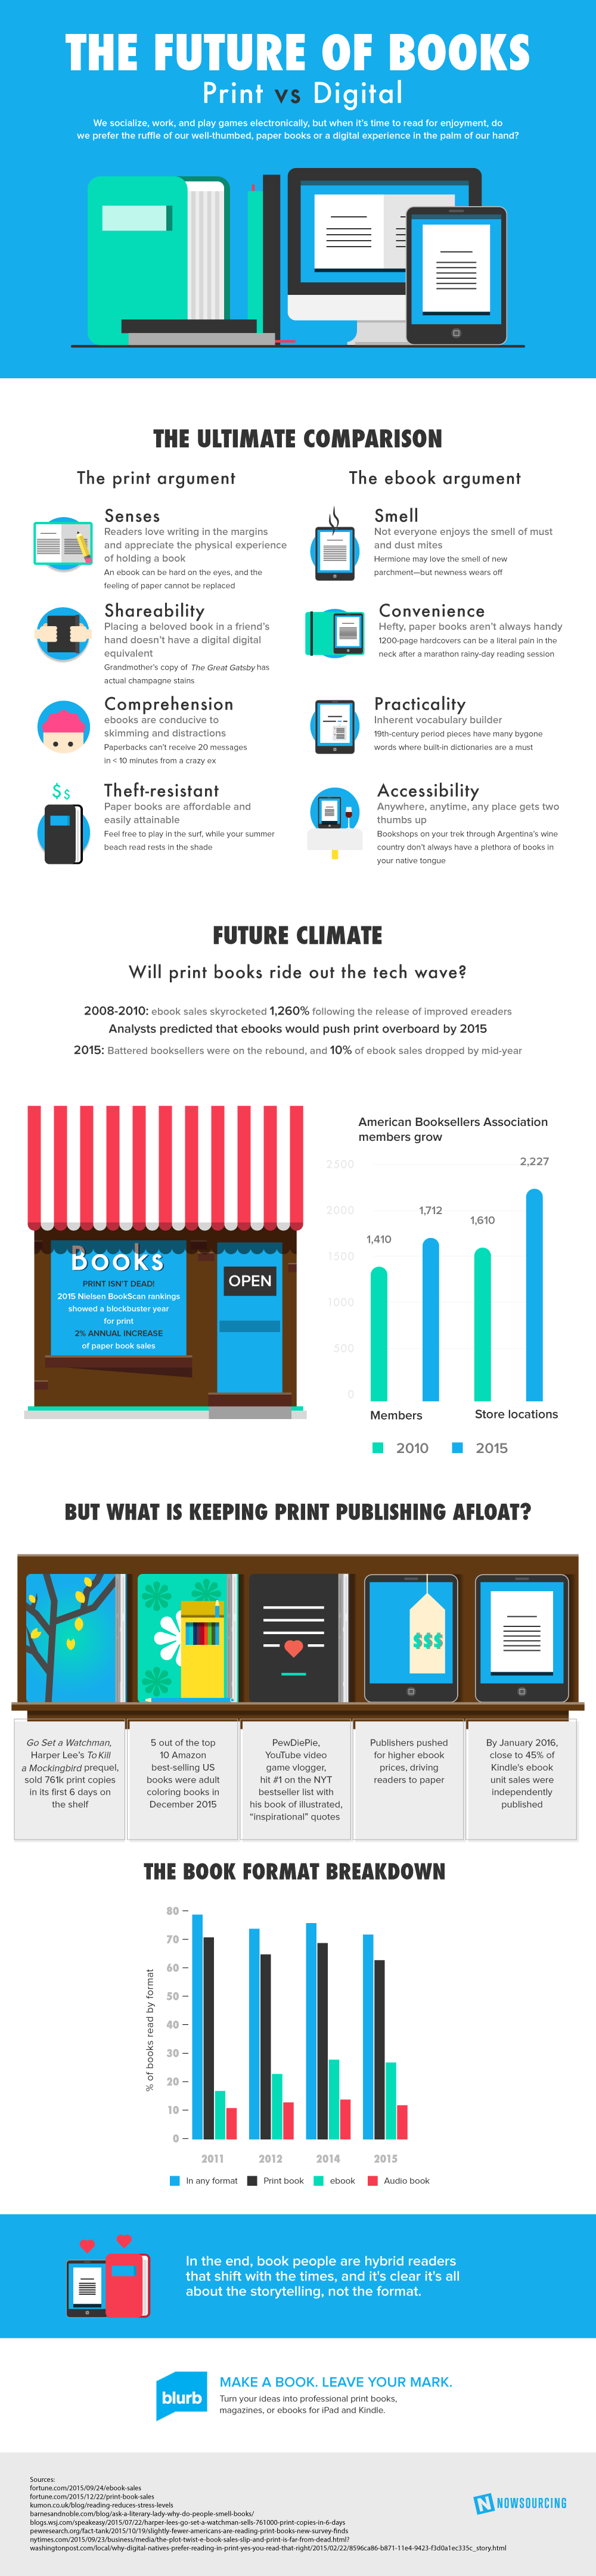 The Future of Books - Print Vs Digital